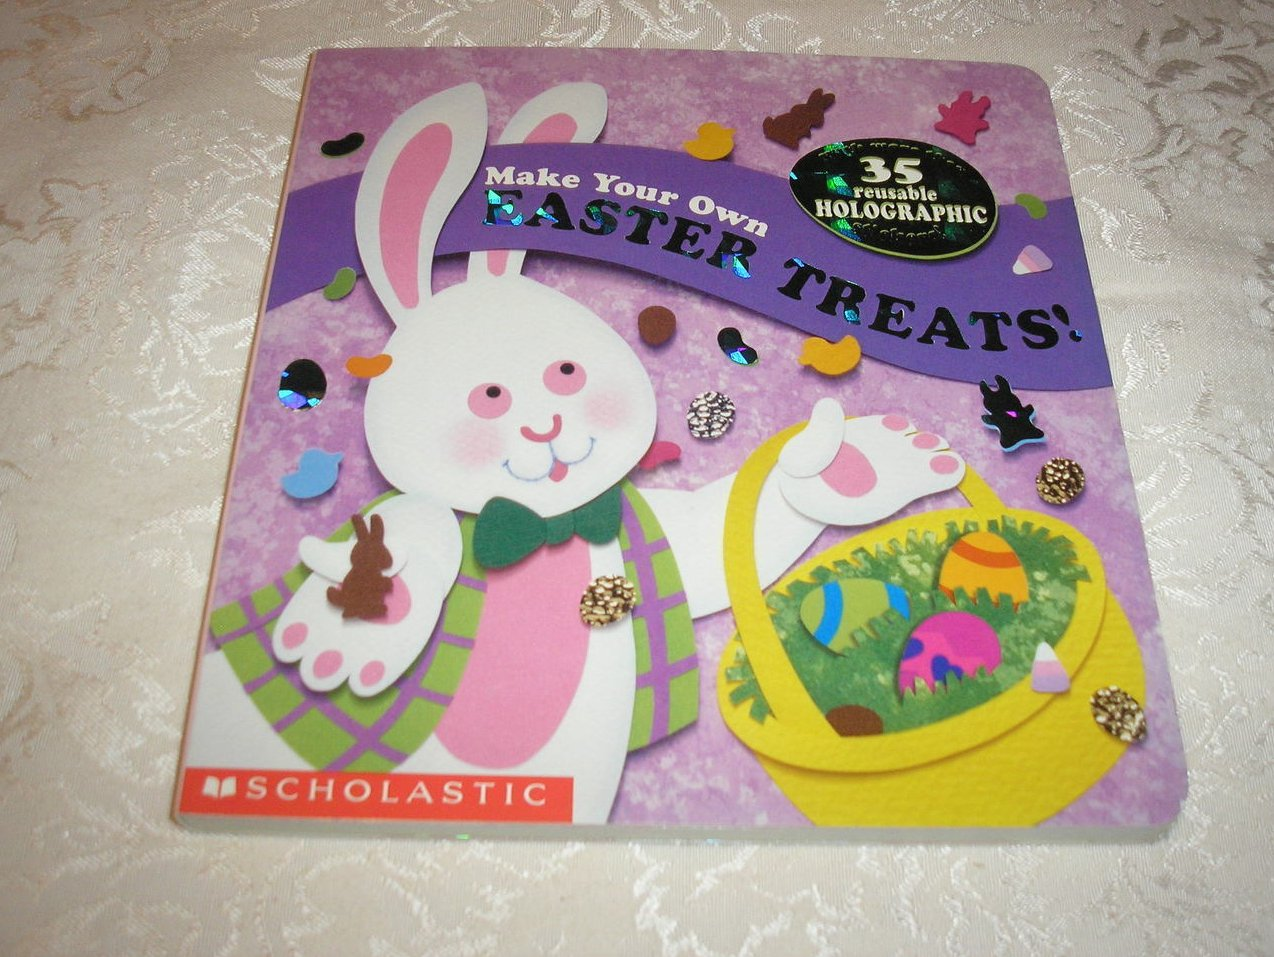 Make Your Own Easter Treats Sonali Fry new board book with stickers